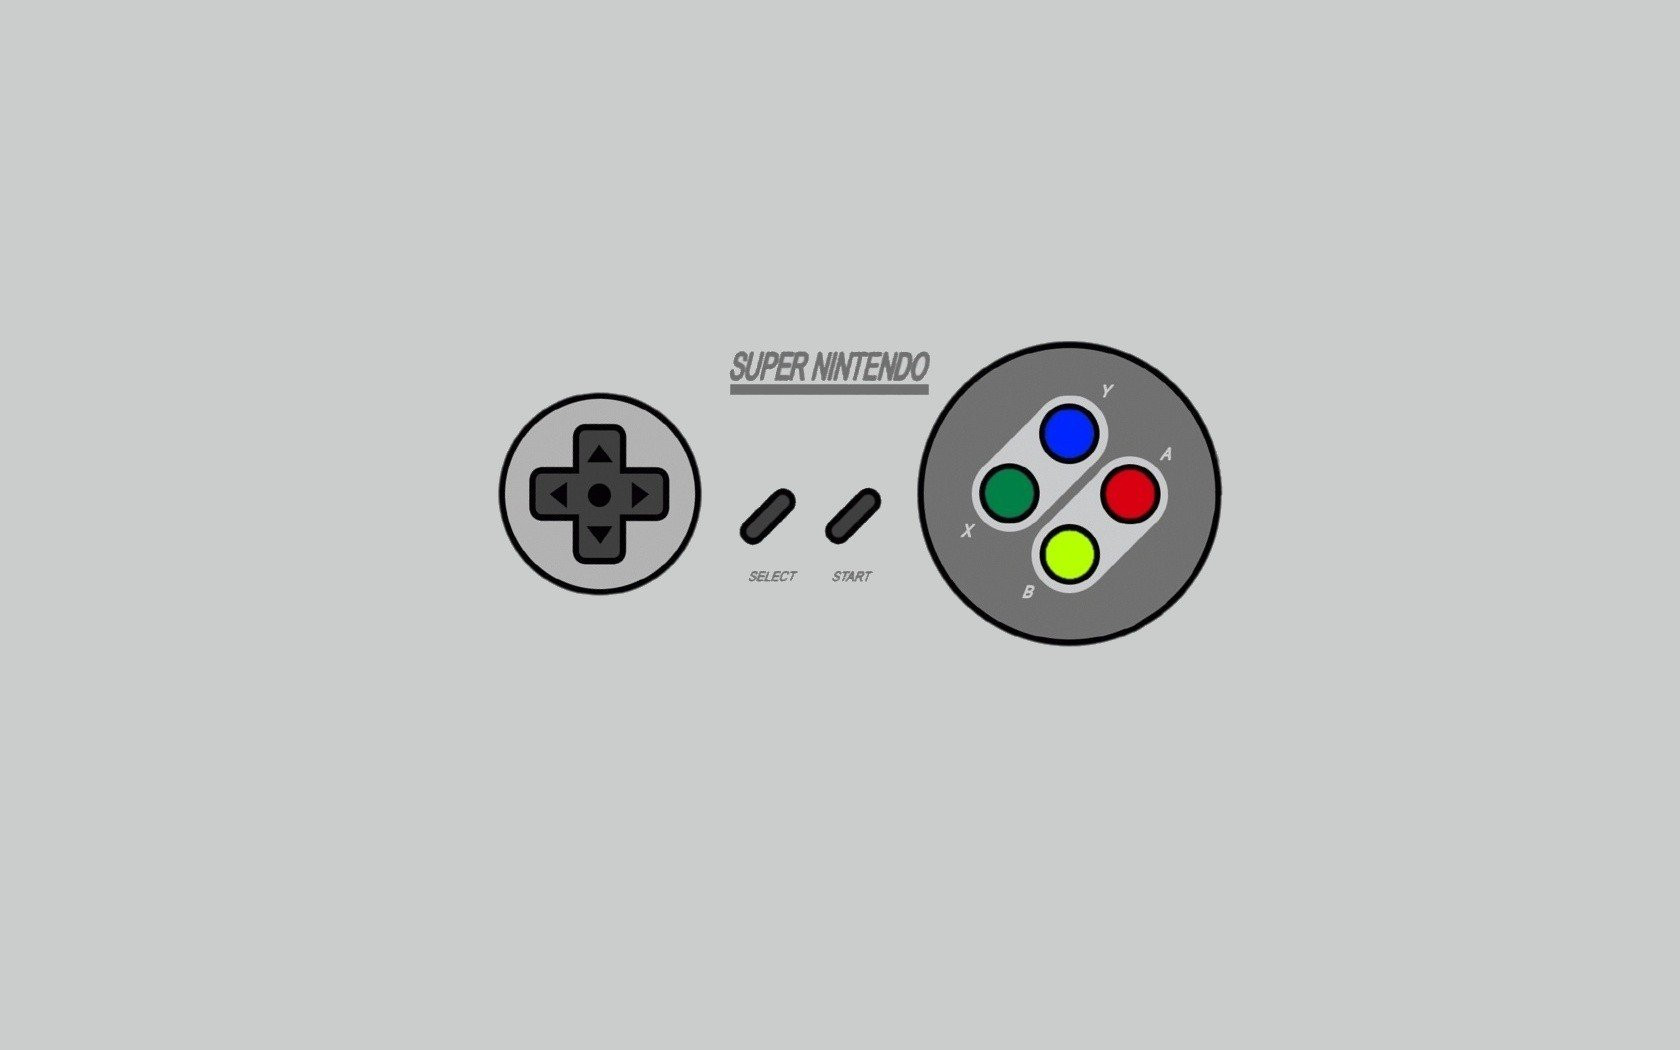 Nintendo Minimalistic Super Nintendo Simple Background